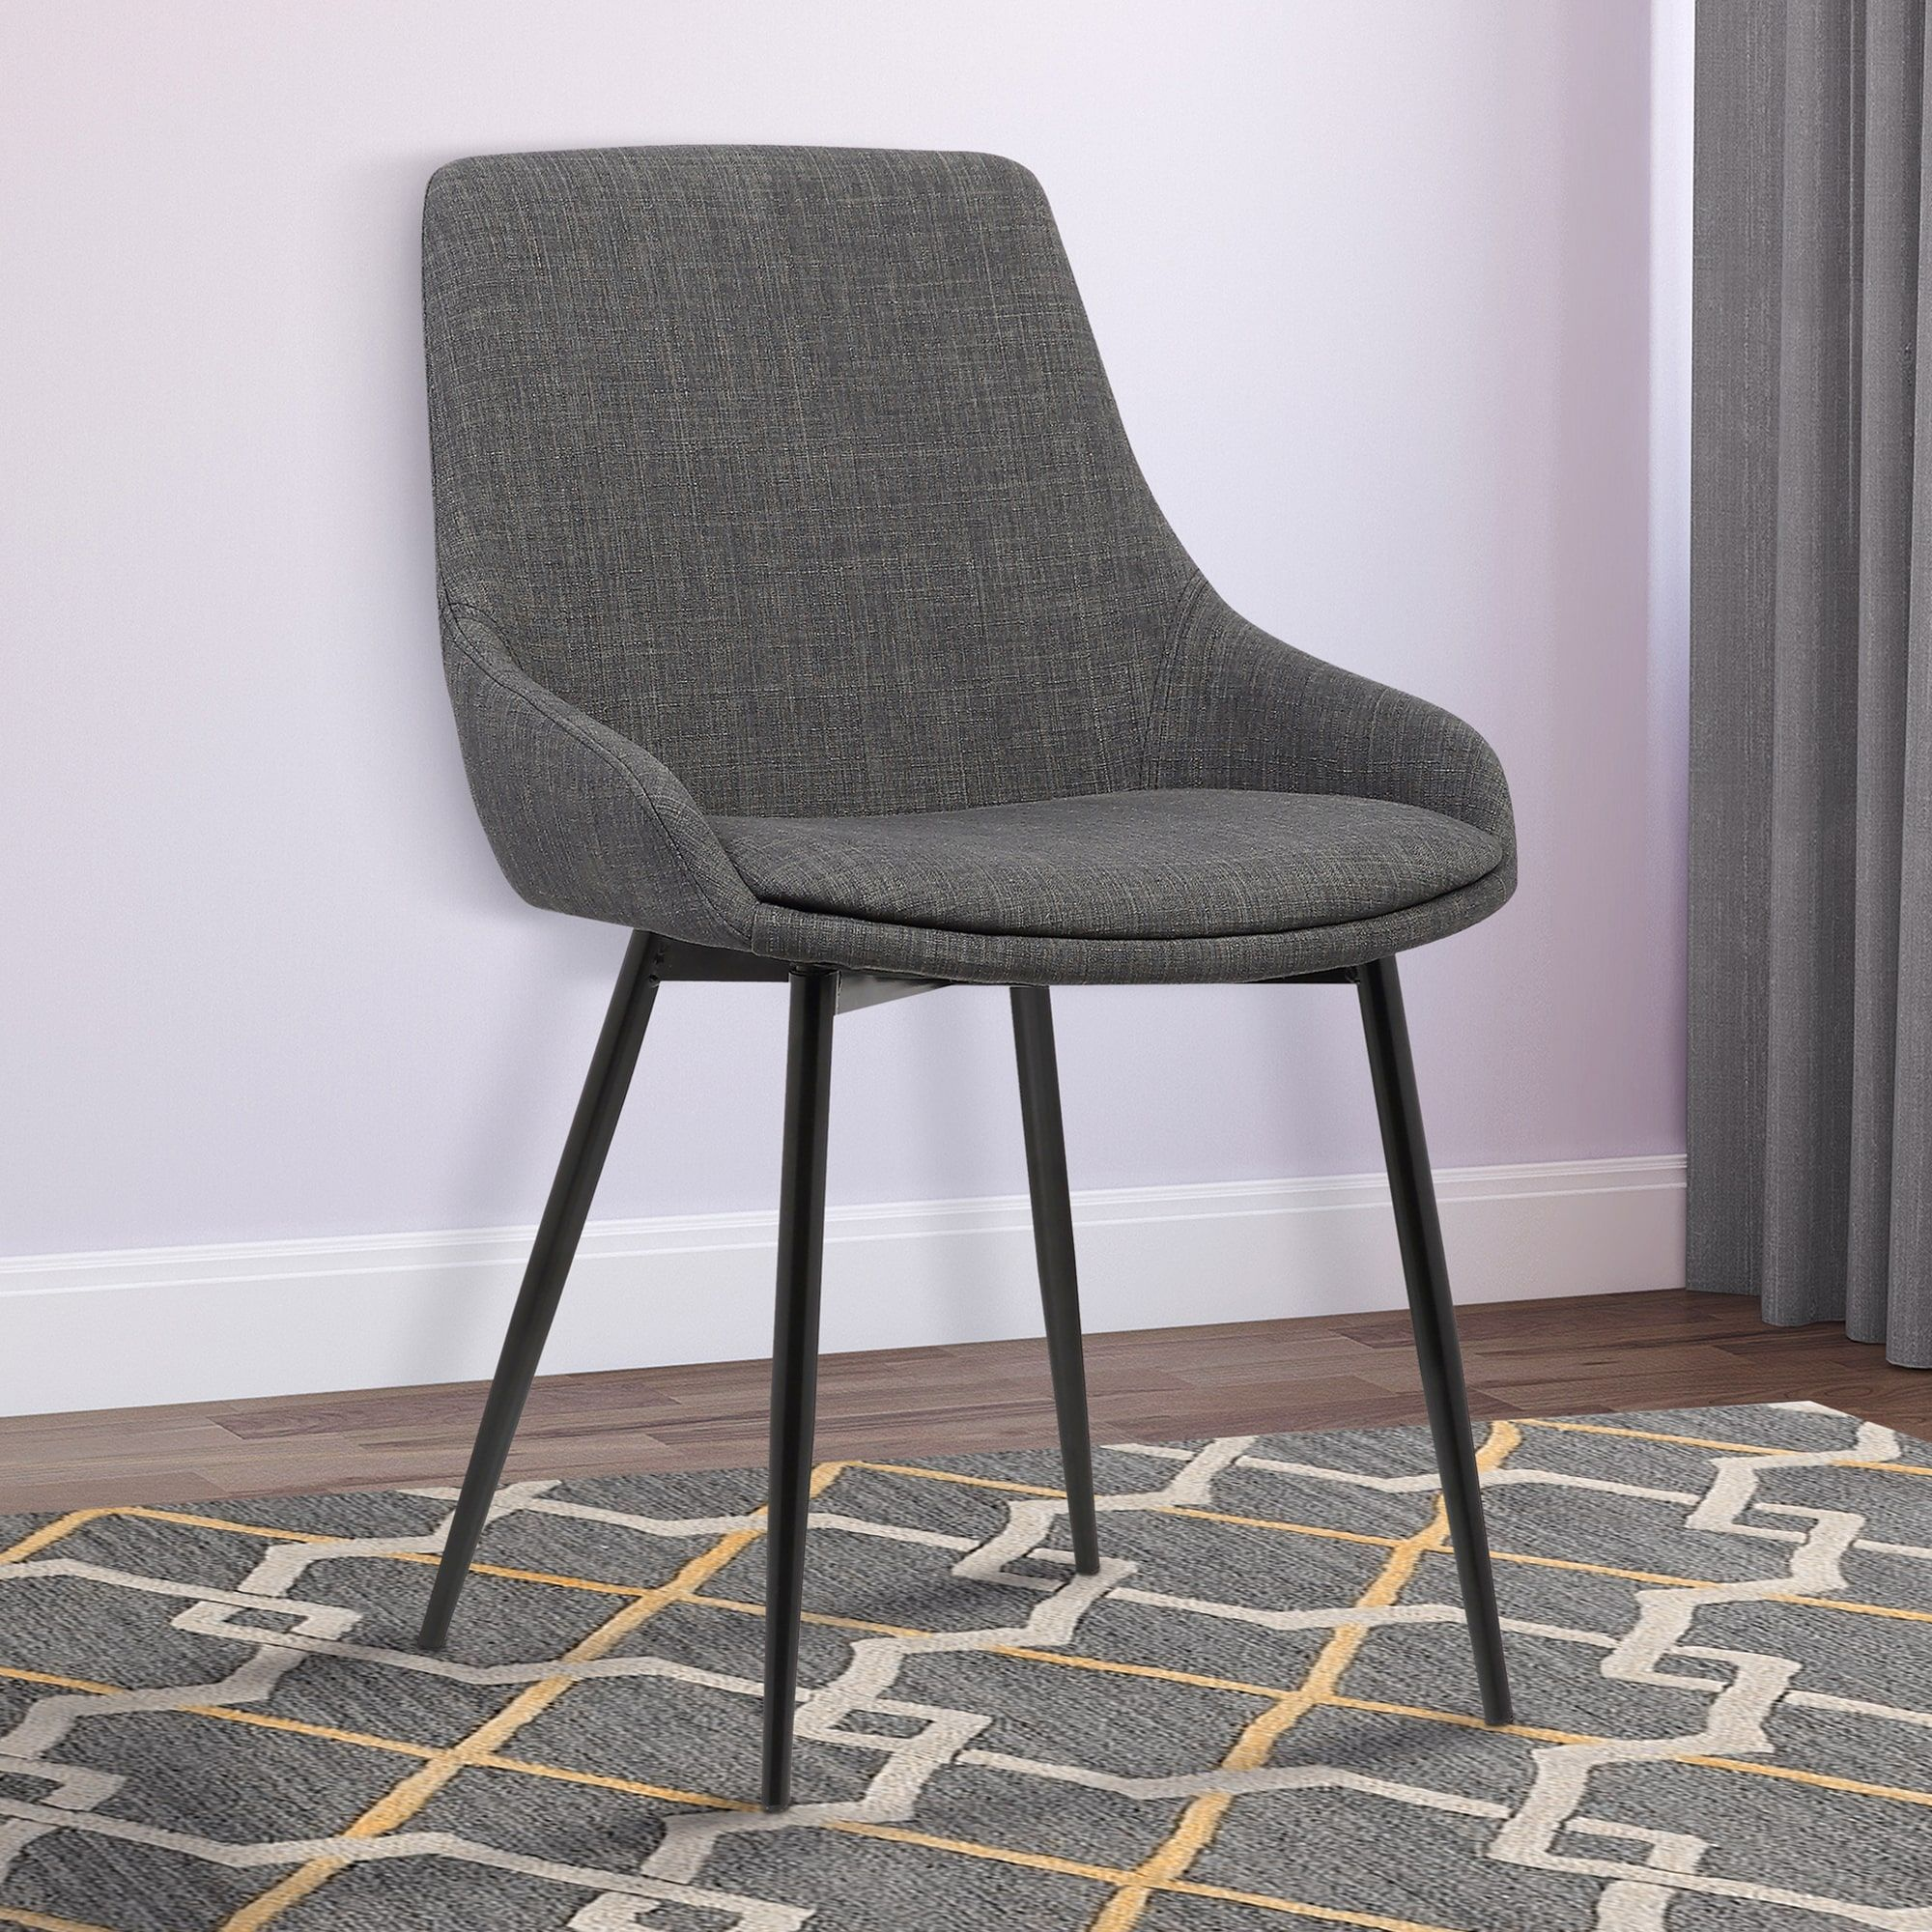 Armen Living Gray Fabric Dining Chair With Black Powder Coated